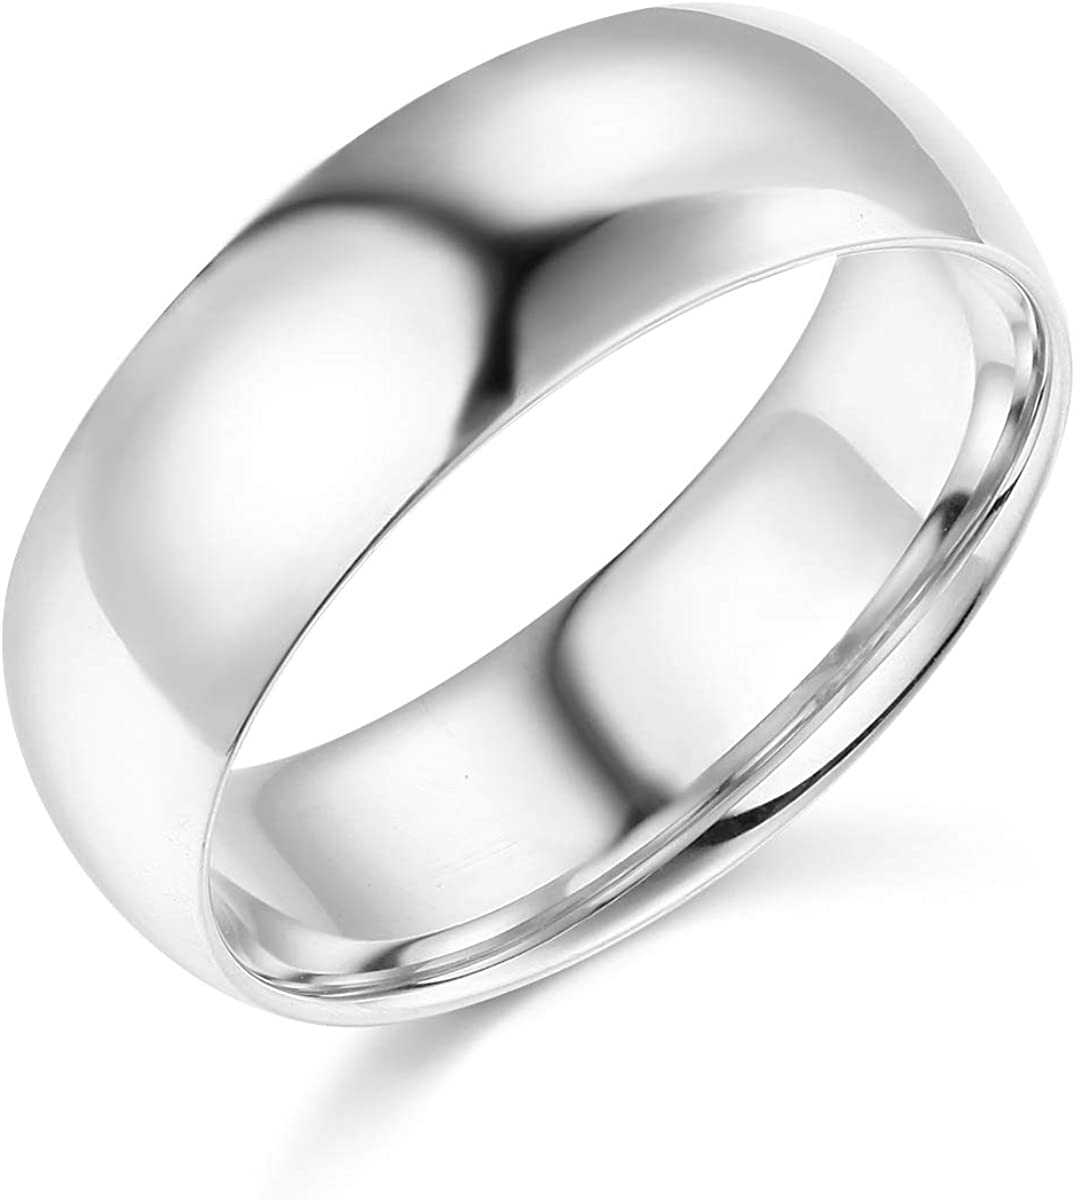 Wellingsale Mens 14k Yellow -OR- White Gold Solid 7mm COMFORT FIT Wedding Band Ring